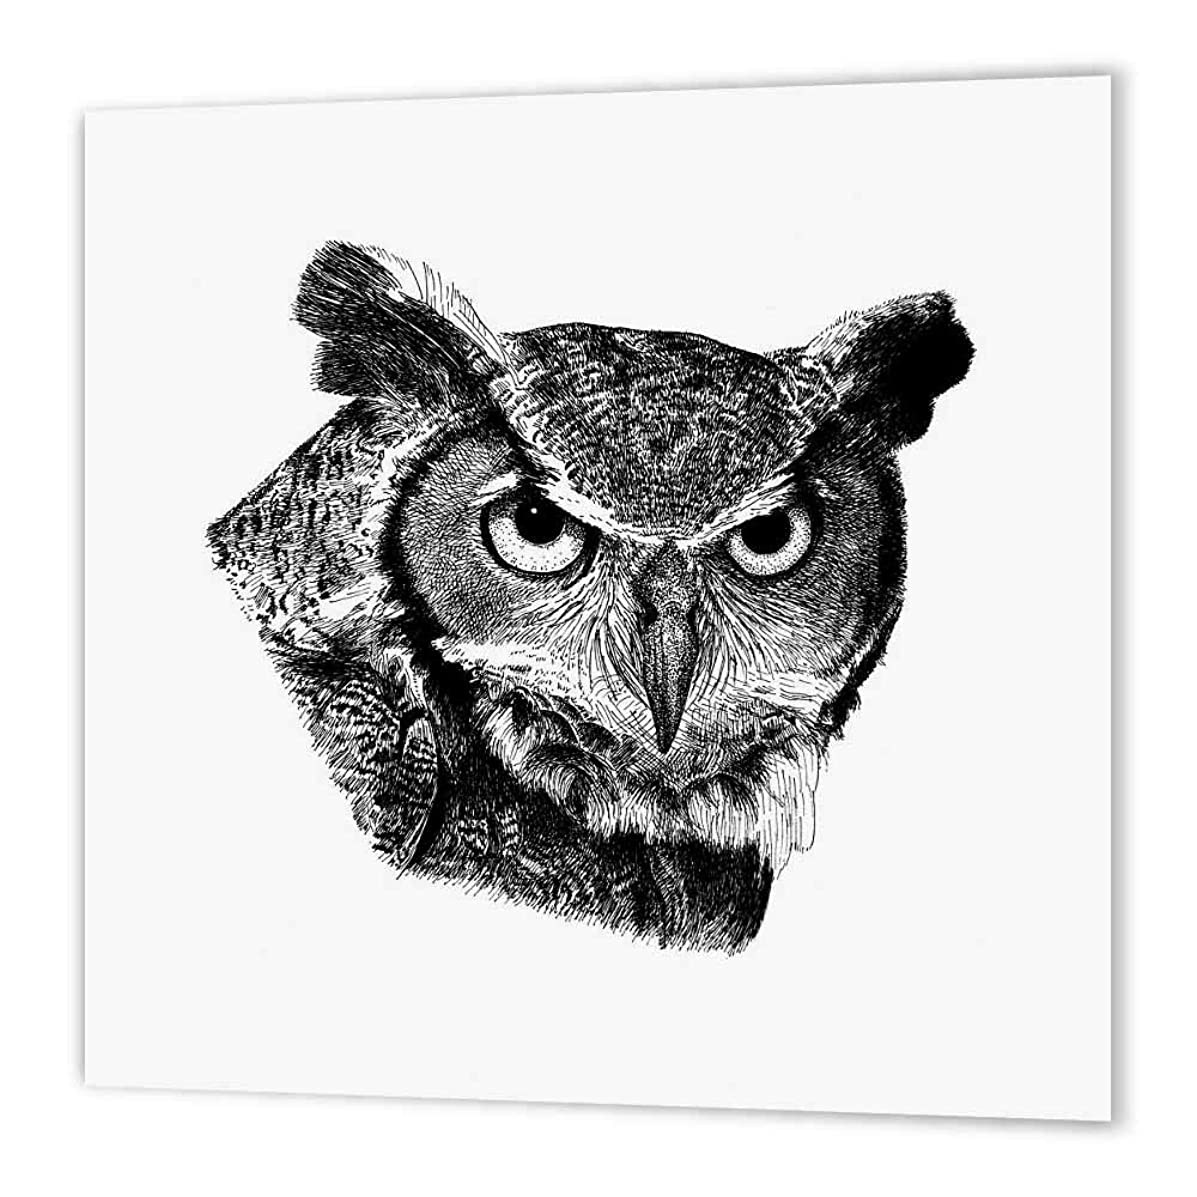 3dRose ht_149788_1 Horned Owl Iron on Heat Transfer Paper for White Material, 8 by 8